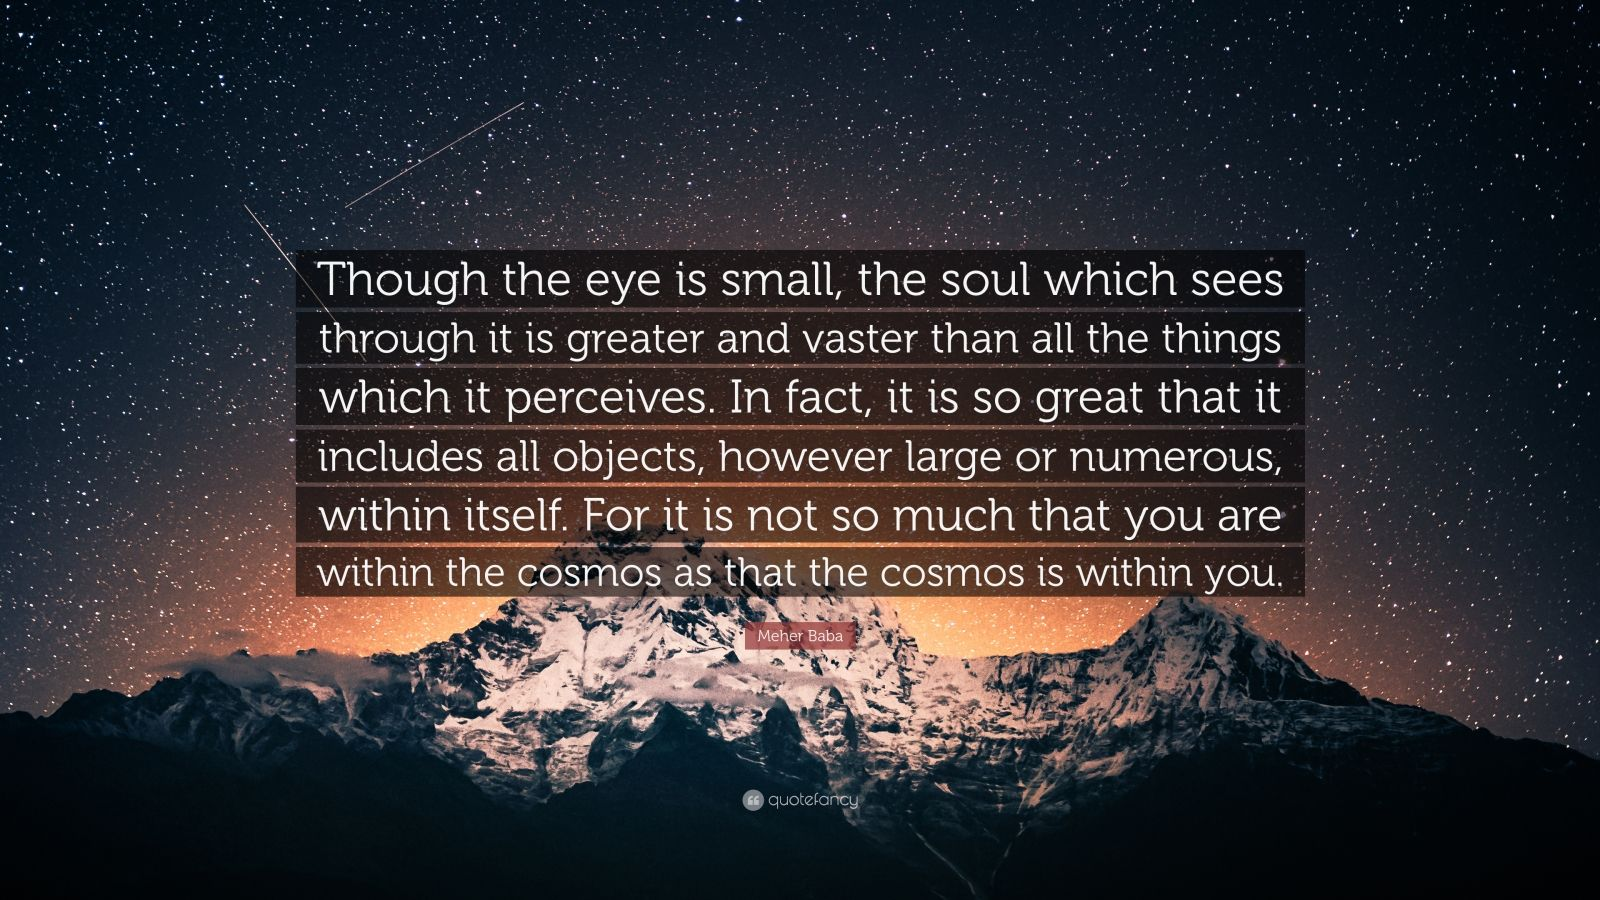 "Meher Baba Quote: ""Though the eye is small, the soul which sees through it is greater and vaster than all the things which it perceives. In fact, it is so great that it includes all objects, however large or numerous, within itself. For it is not so much that you are within the cosmos as that the cosmos is within you."""